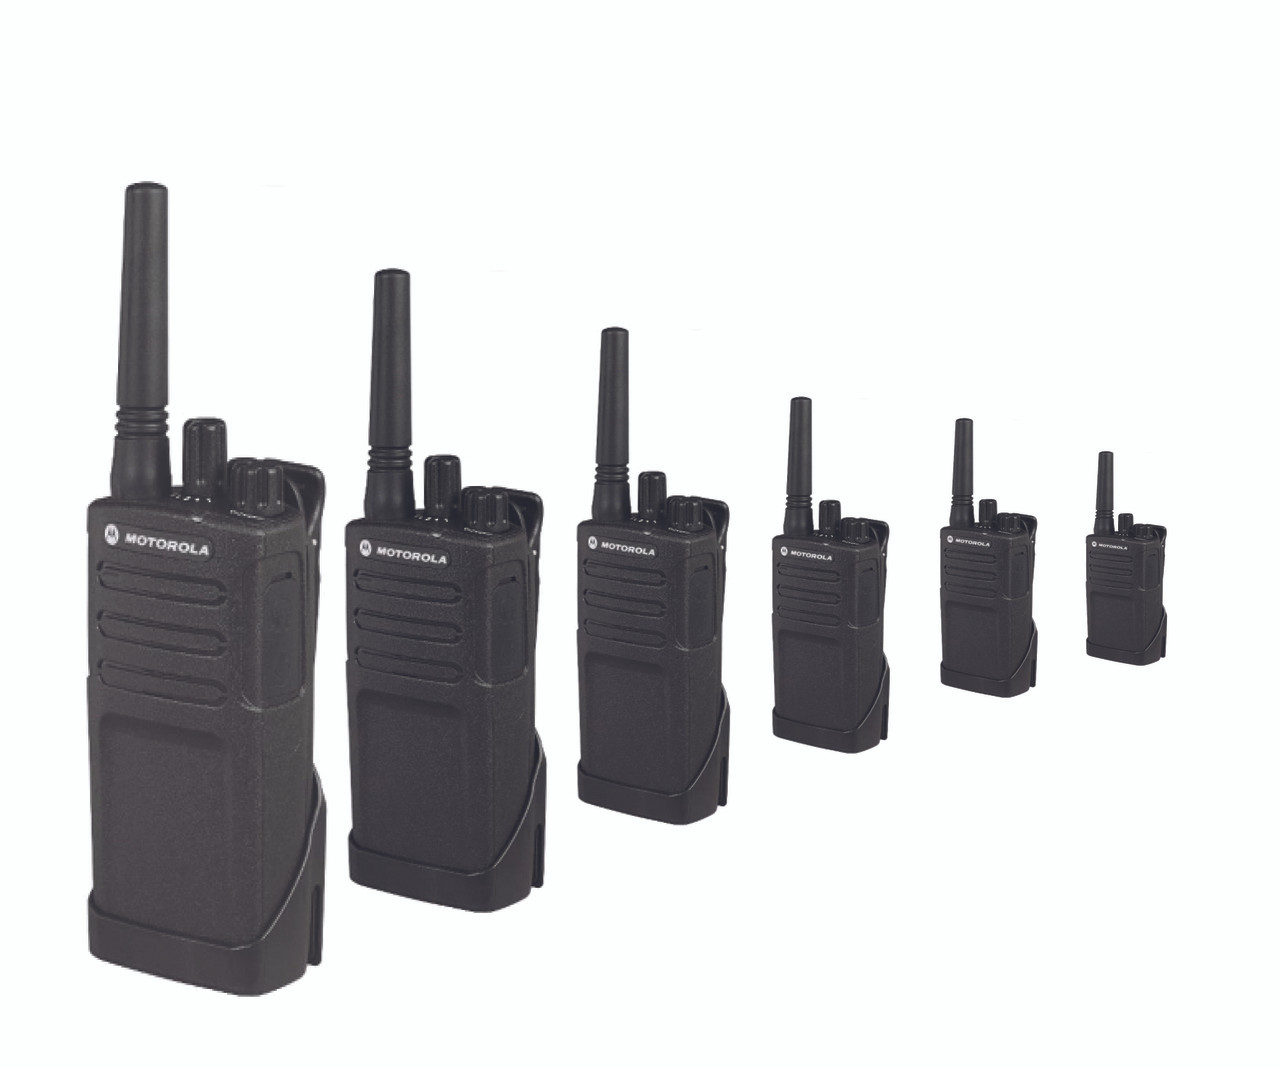 Motorola RMU2040 Six Pack of 2-Way 4CH 2W UHF Business Radio